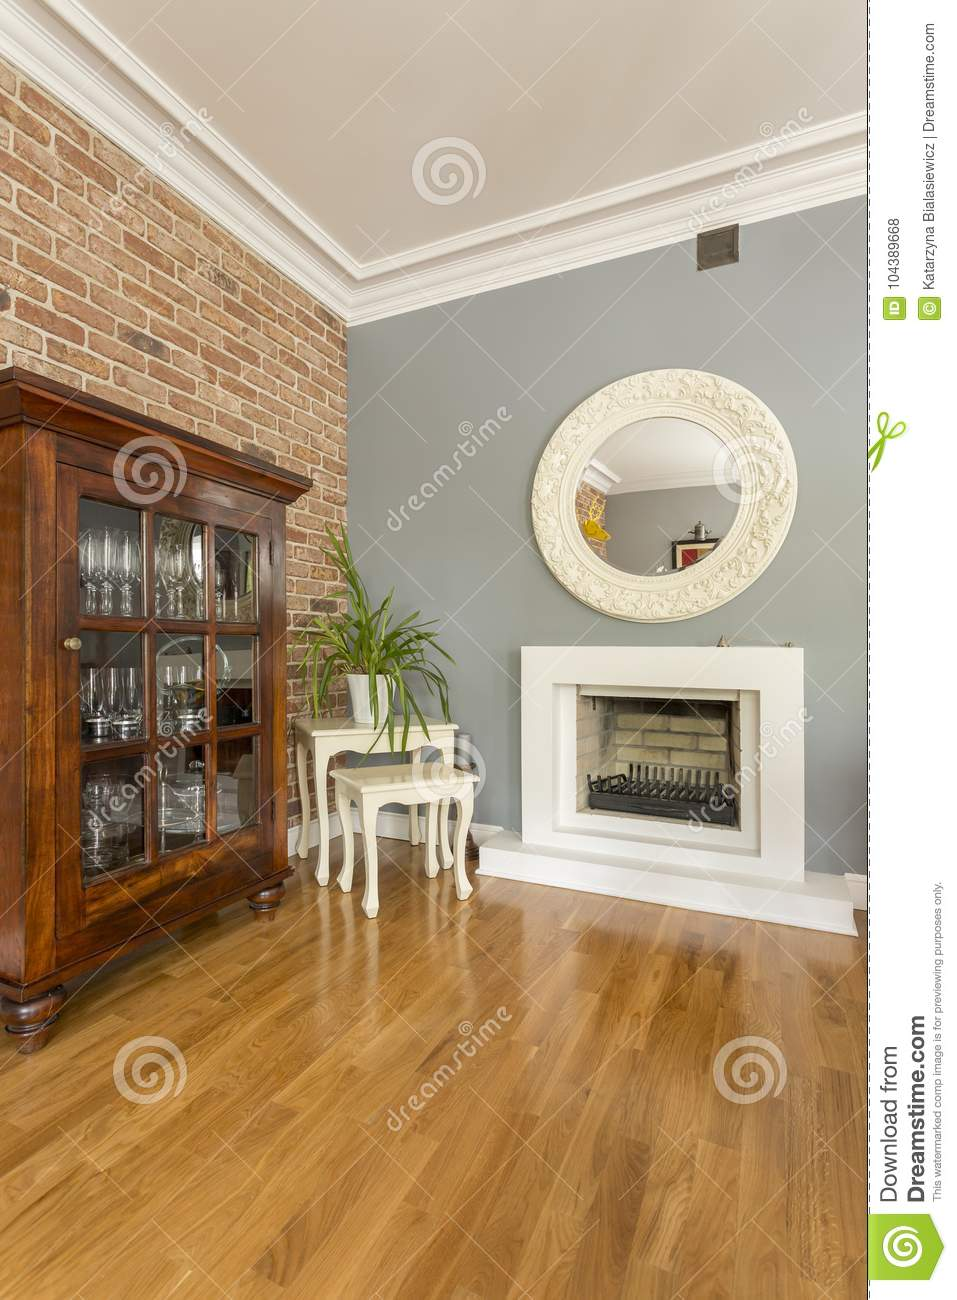 Decorative Mirrors For Above Fireplace.Open Space With Wooden Cabinet Stock Photo Image Of Floor